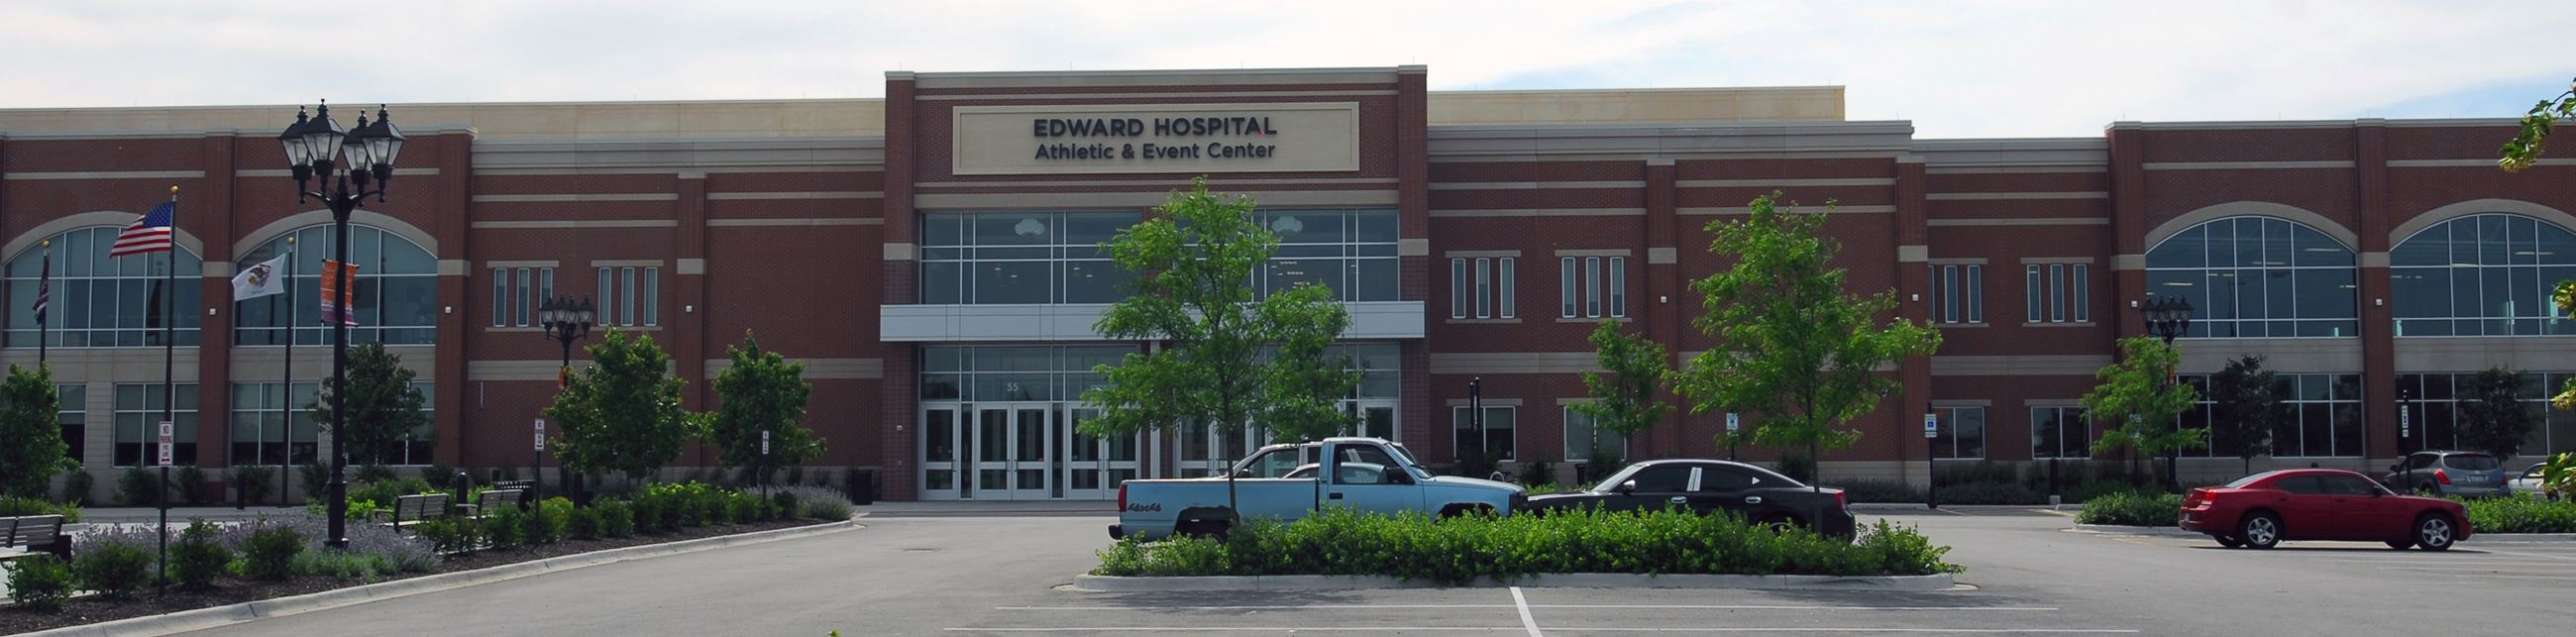 Edward Hospital Athletic and Event Center Panoramic View